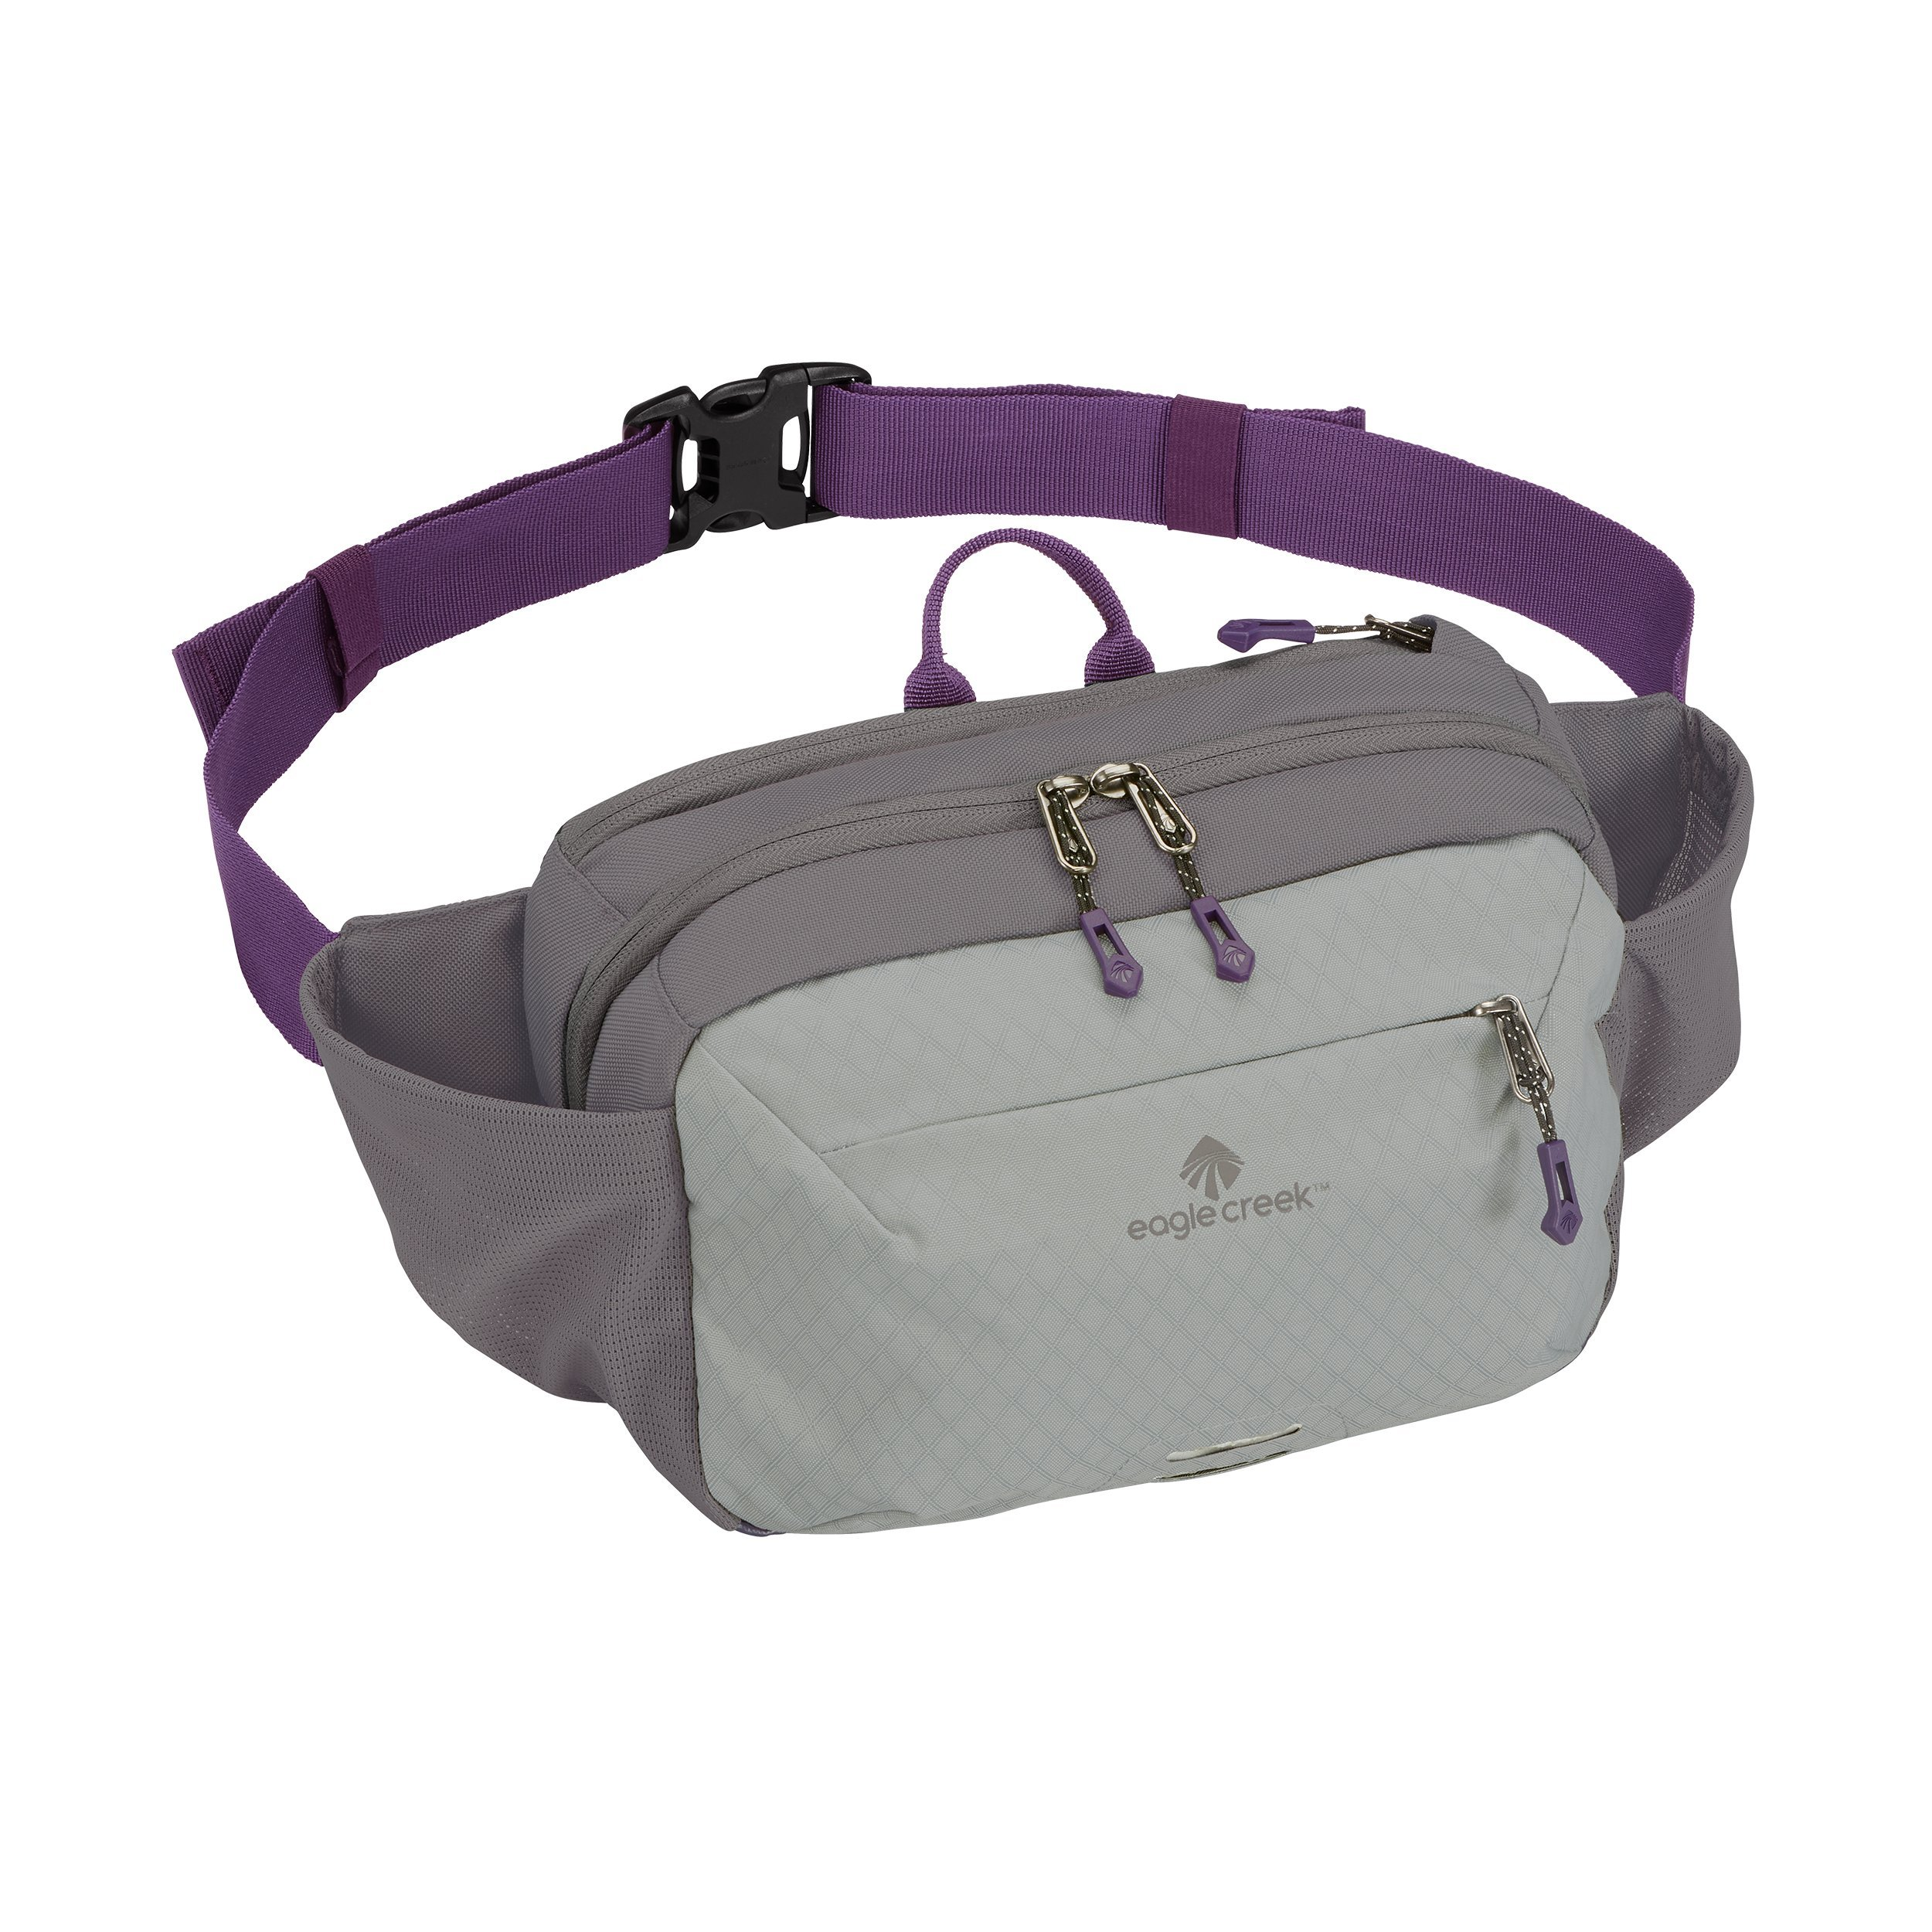 Eagle Creek Multiuse Fanny Travel Sport Waist Pack for Tablet and Phone, Graphite/Amethyst